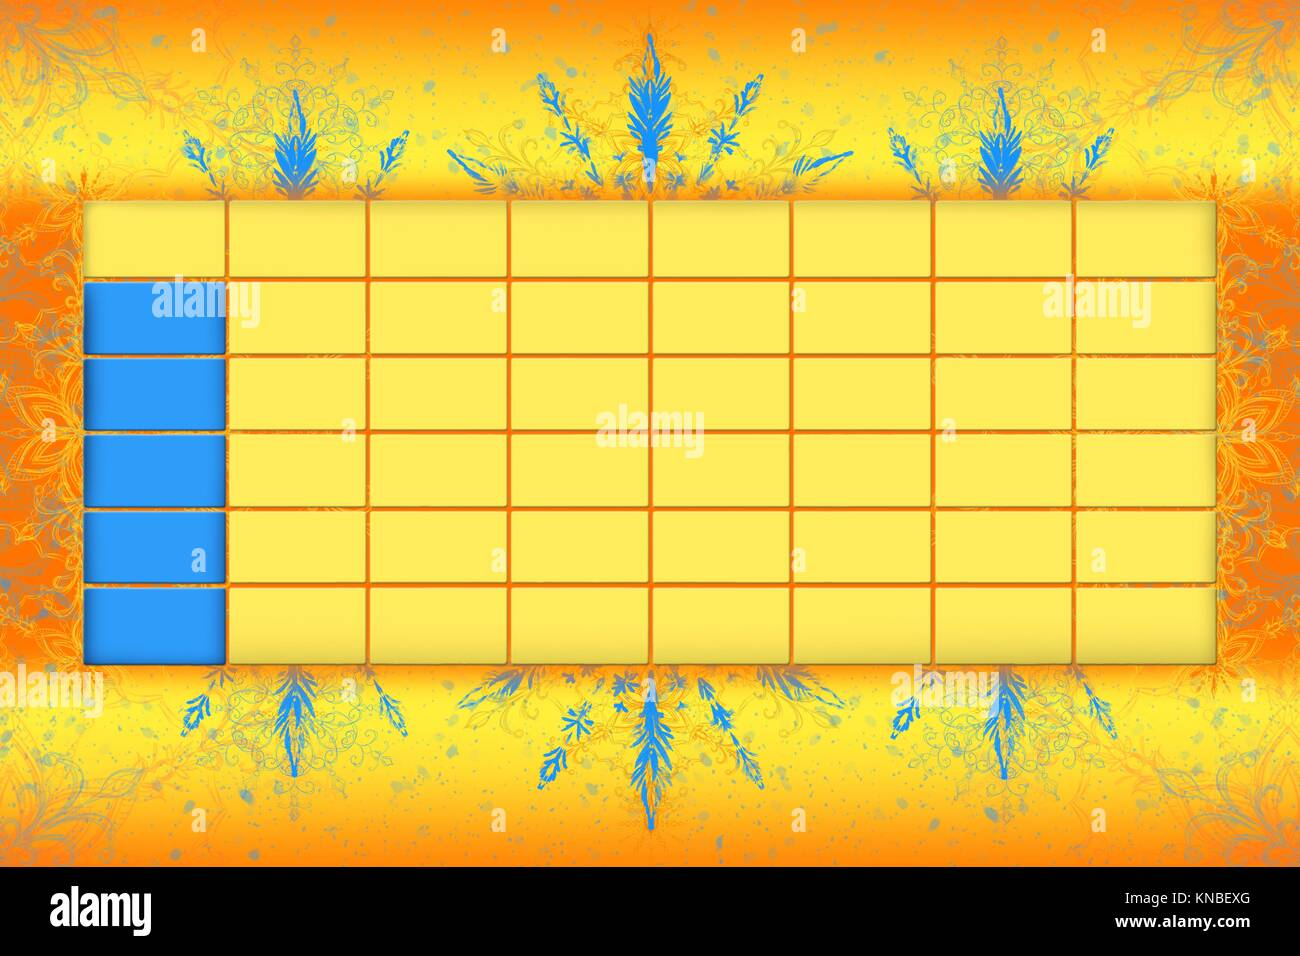 School Timetable Schedule With Colorfull Background 3D illustration. - Stock Image